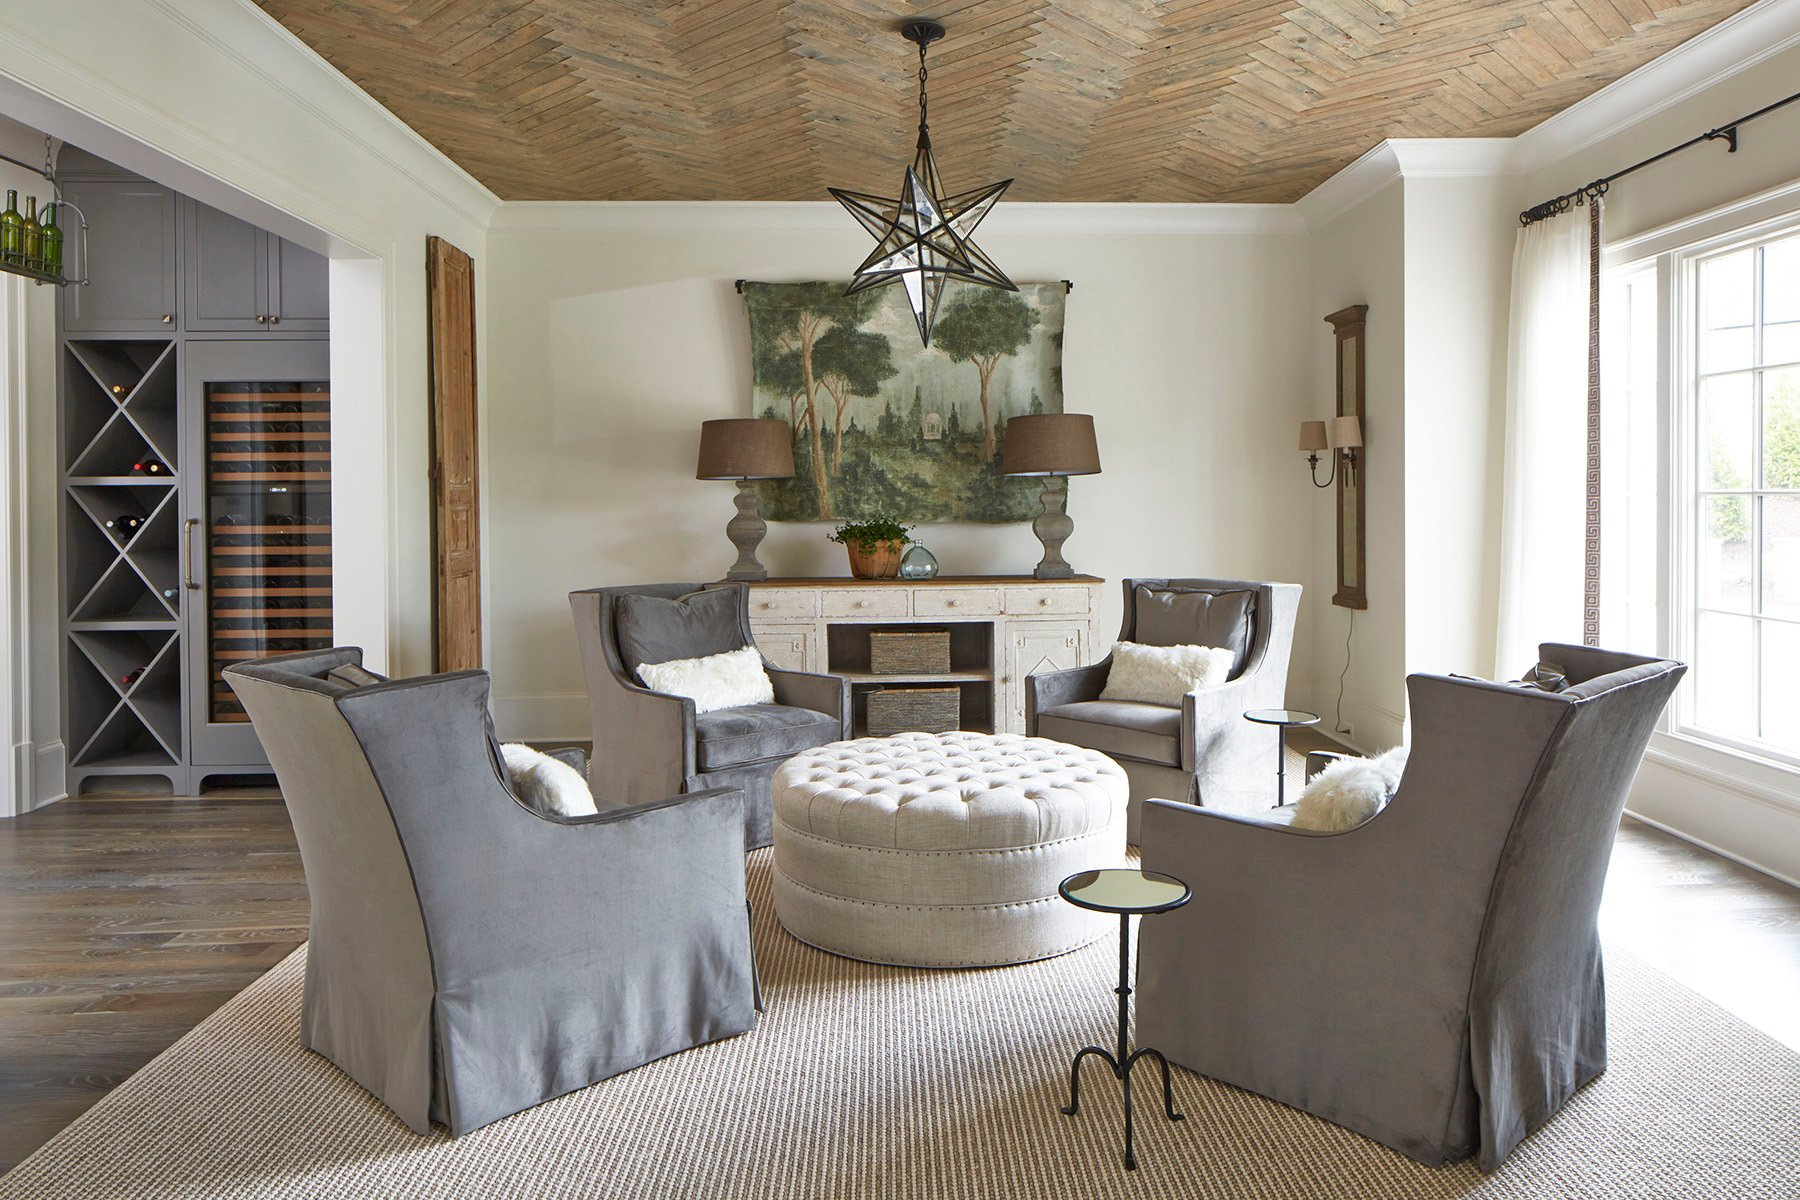 Living room with 4 plush grey chairs over a tan woven fiber rug and cream colored ottoman.